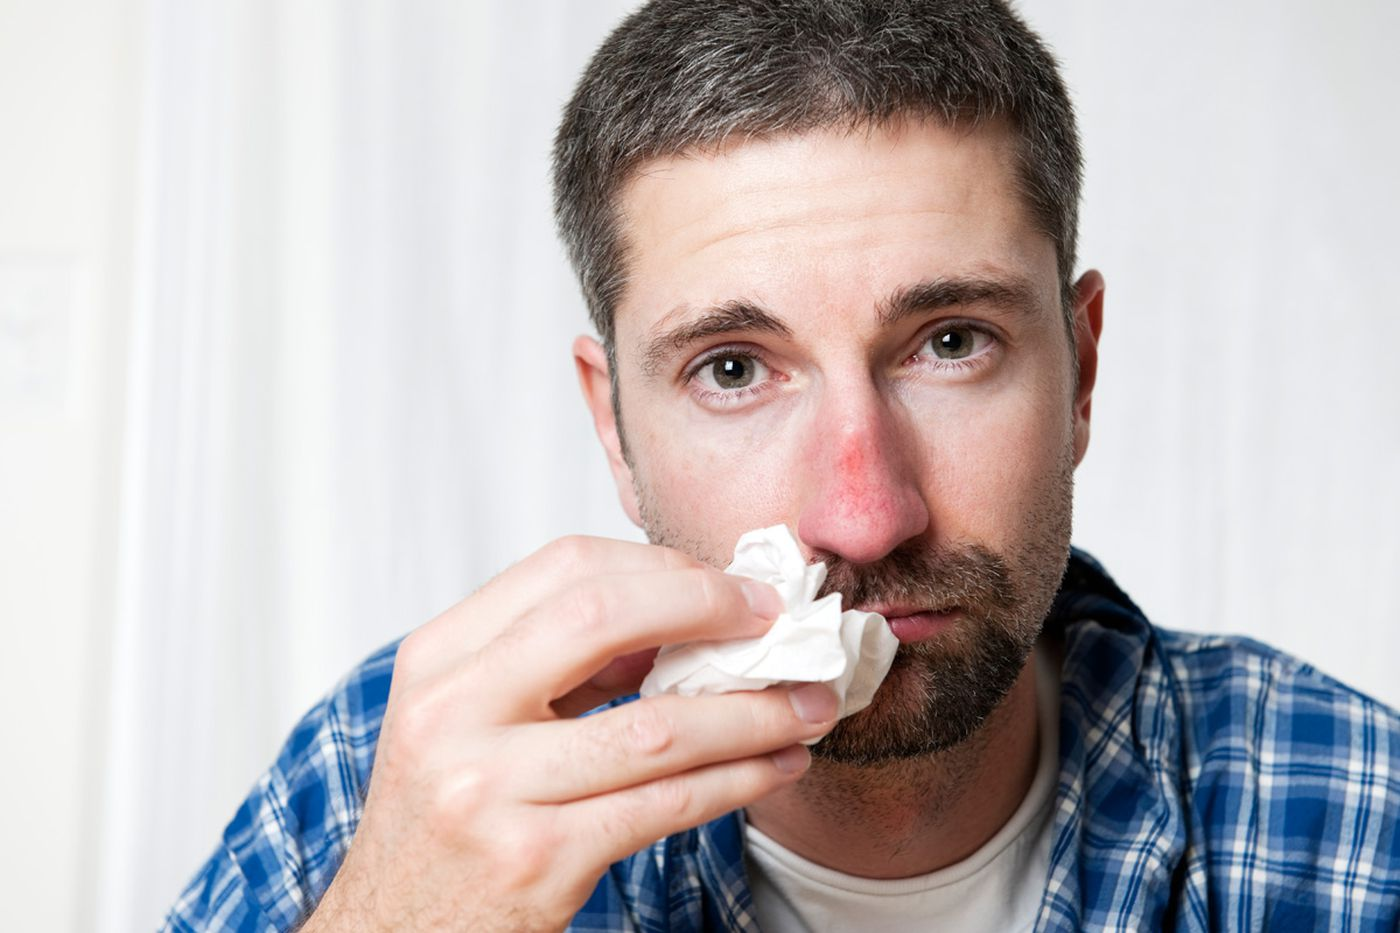 Q&A: How can I avoid getting the flu this year?